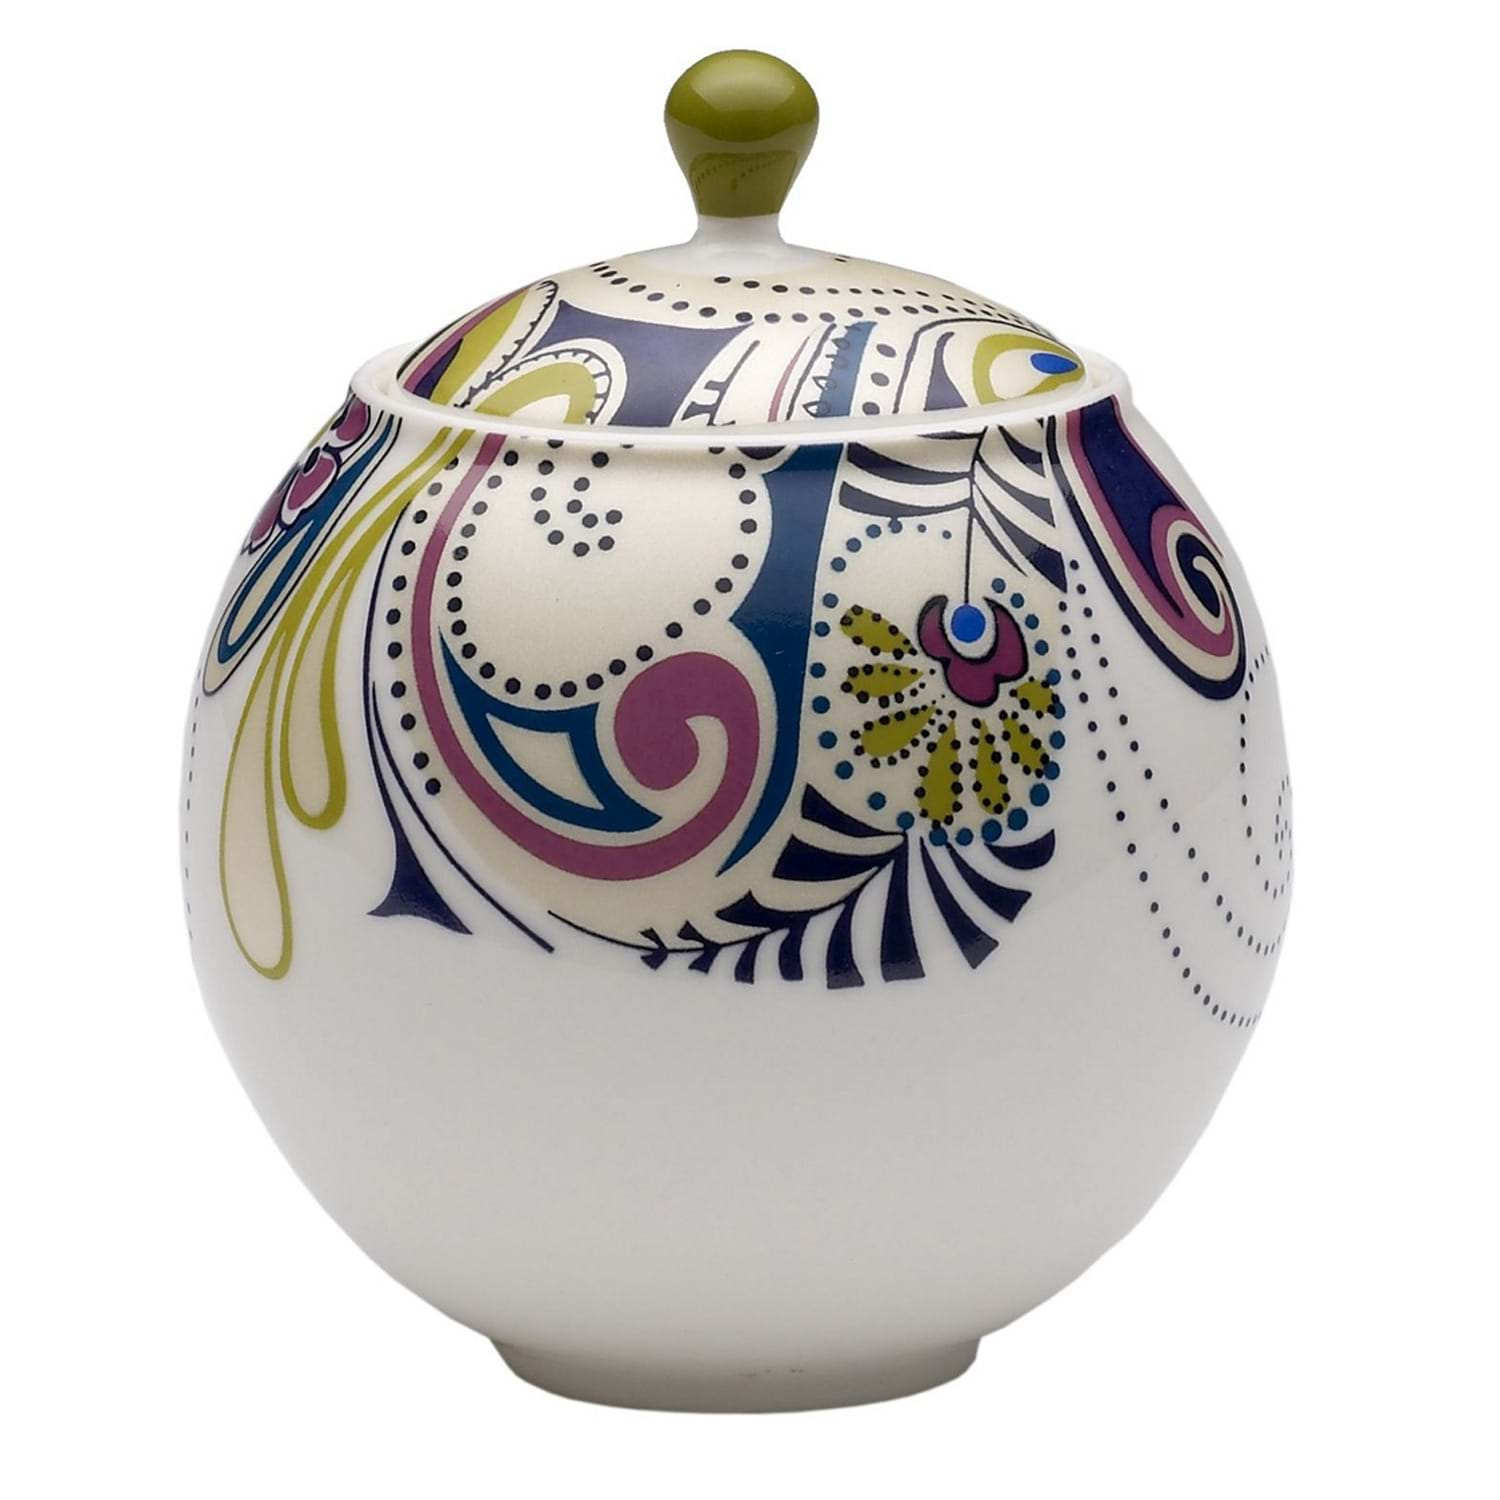 Image of Monsoon By Denby Cosmic Covered Sugar Bowl